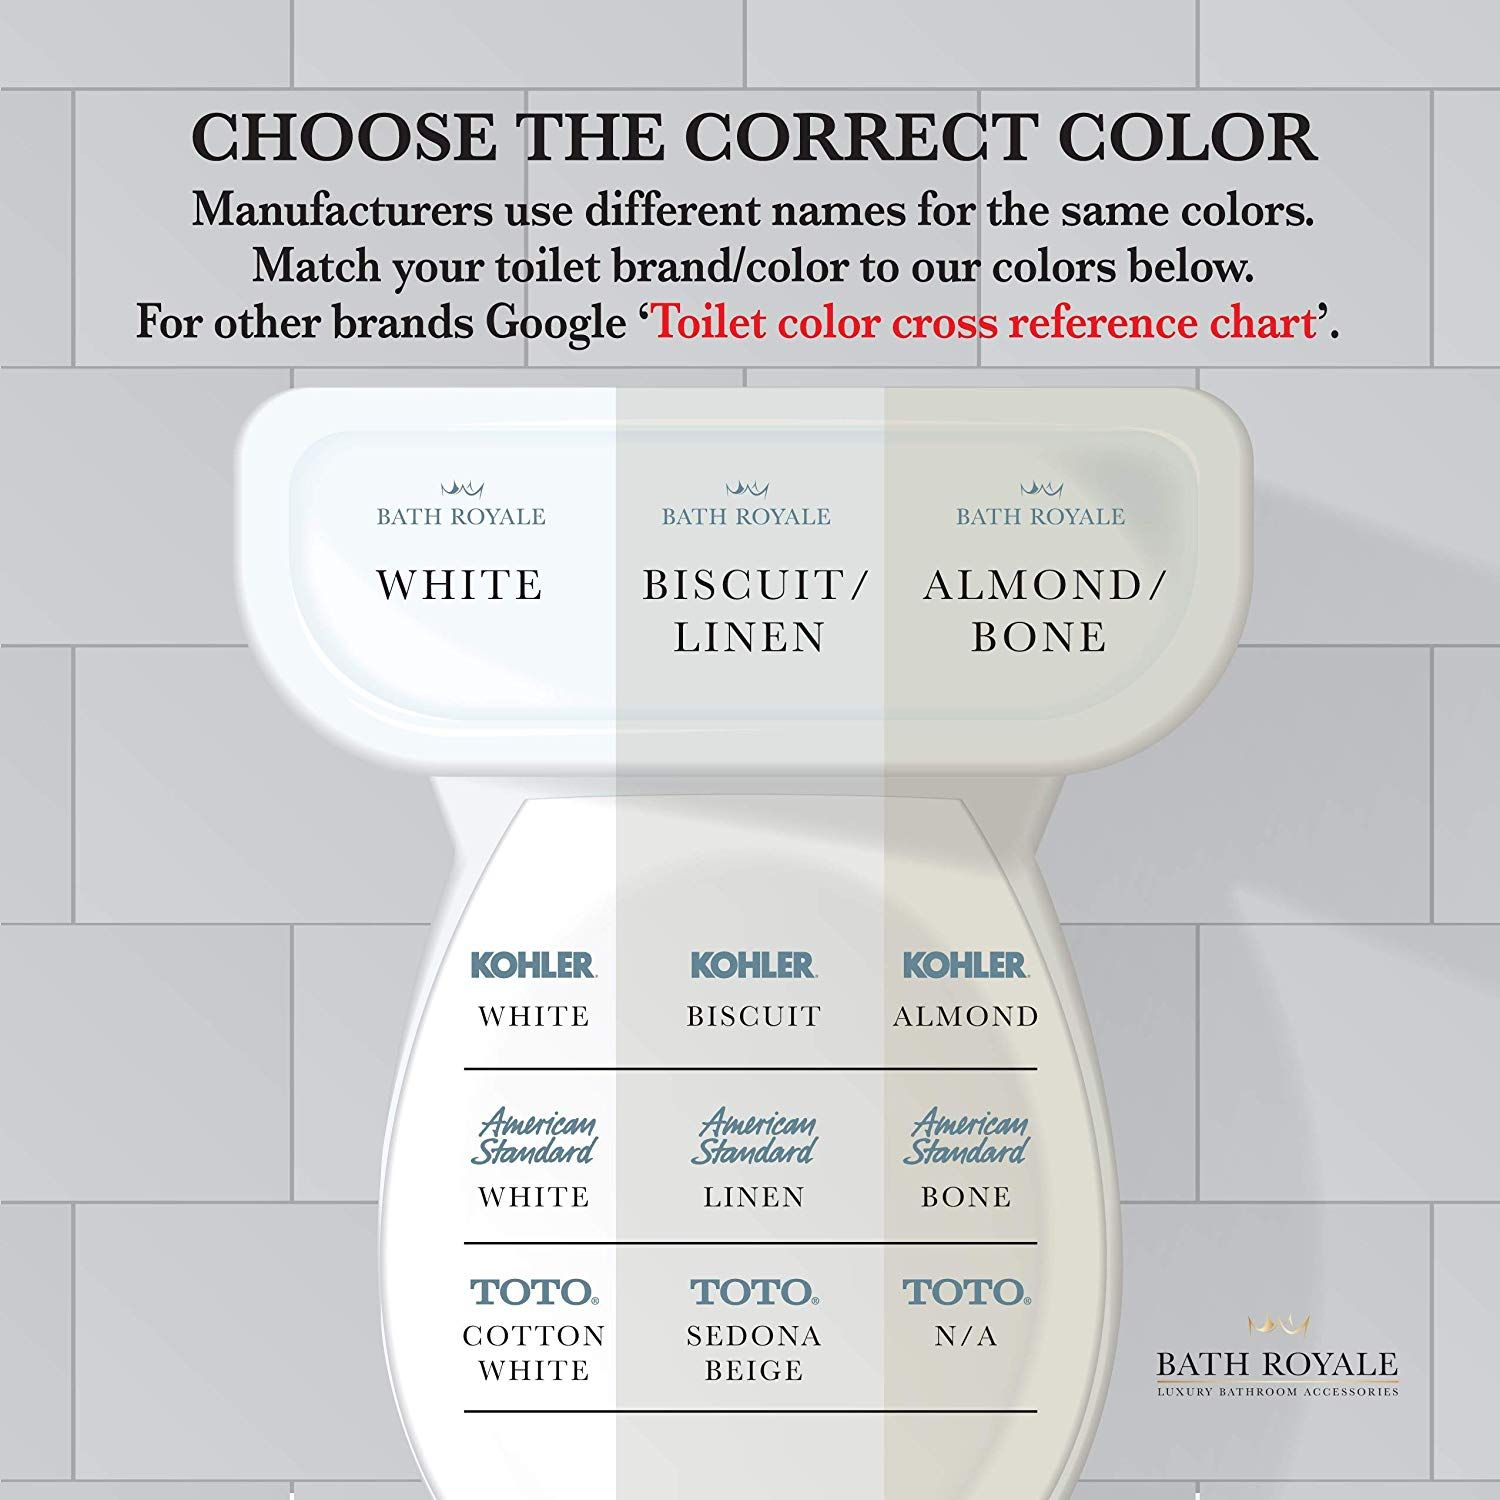 Image Result For Cotton White Or Colonial White Ti Match Kohler Brand Colors Reference Chart Kohler